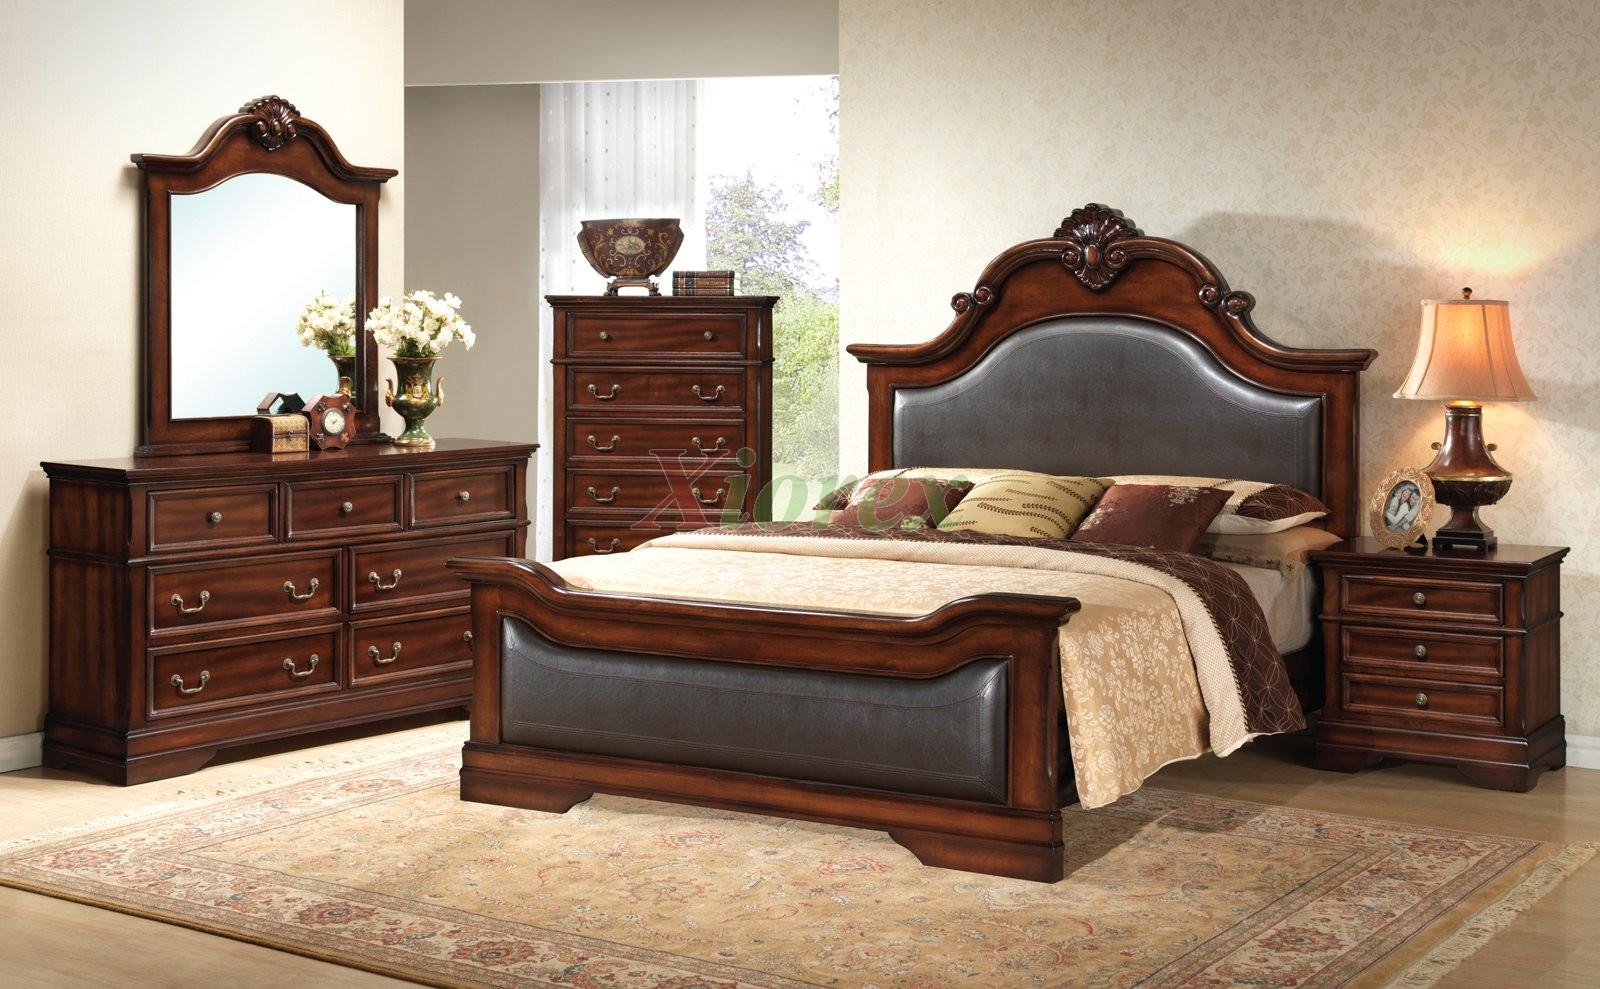 Charming Bedroom Furniture Set With Leather Headboard And Footboard 134 | Xiorex